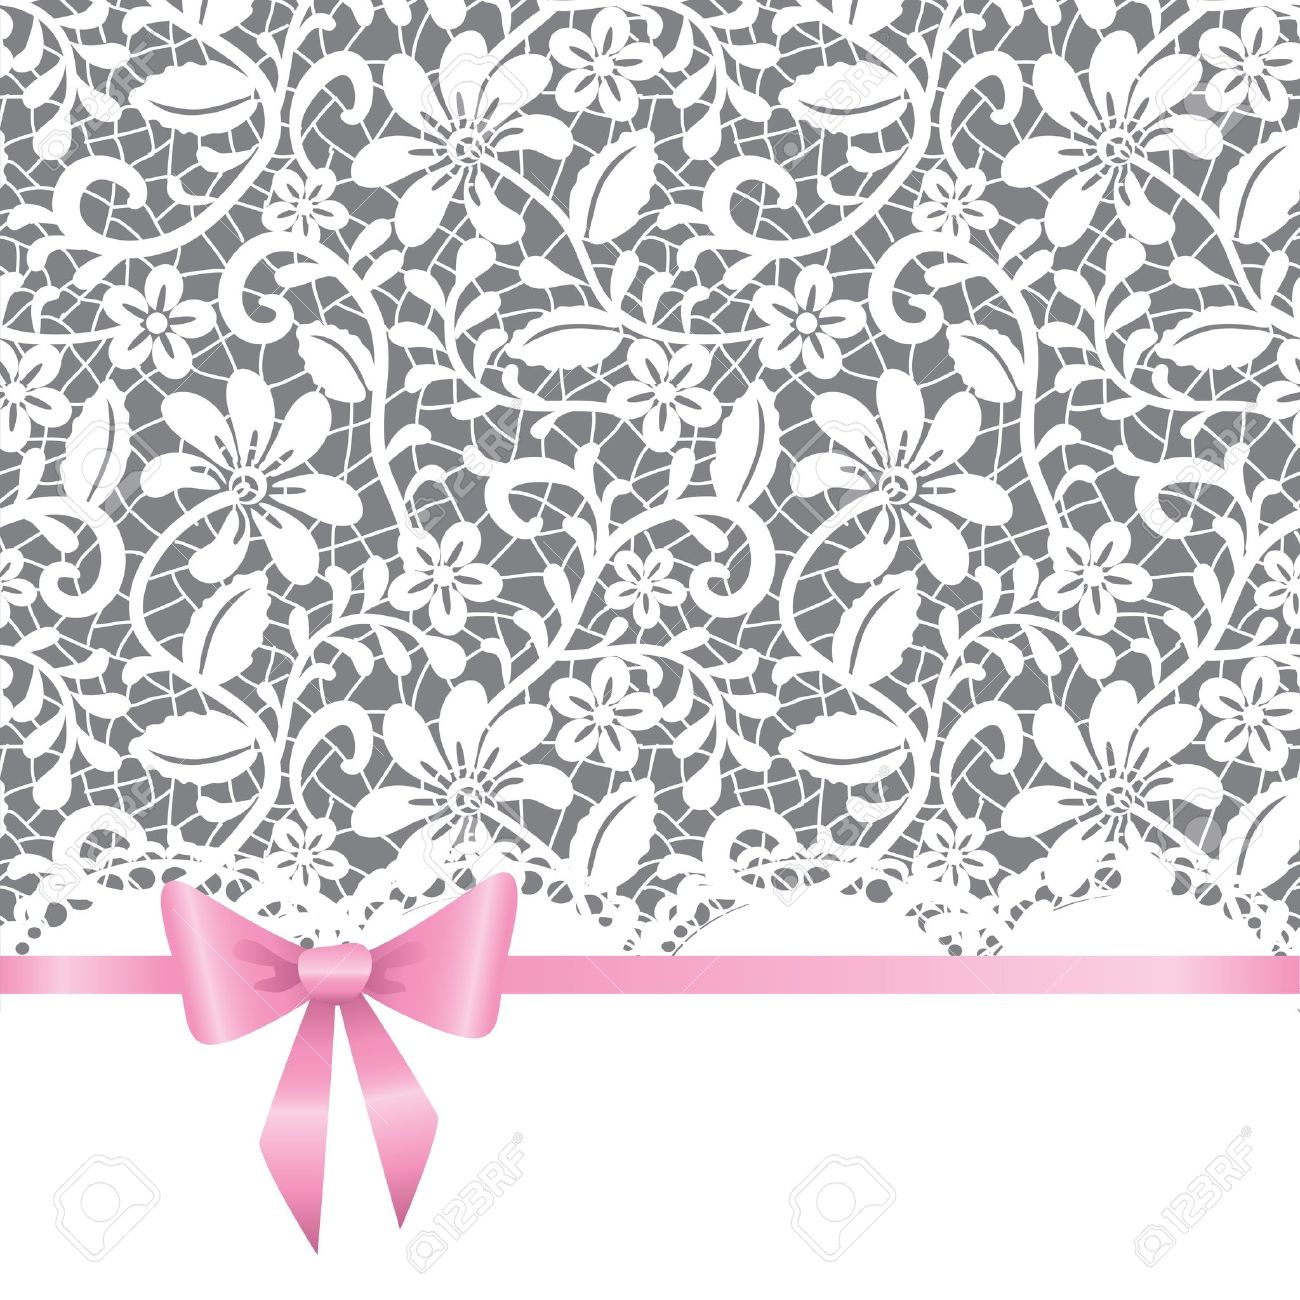 template for wedding, invitation or greeting card with lace background and pink ribbon - 15427657